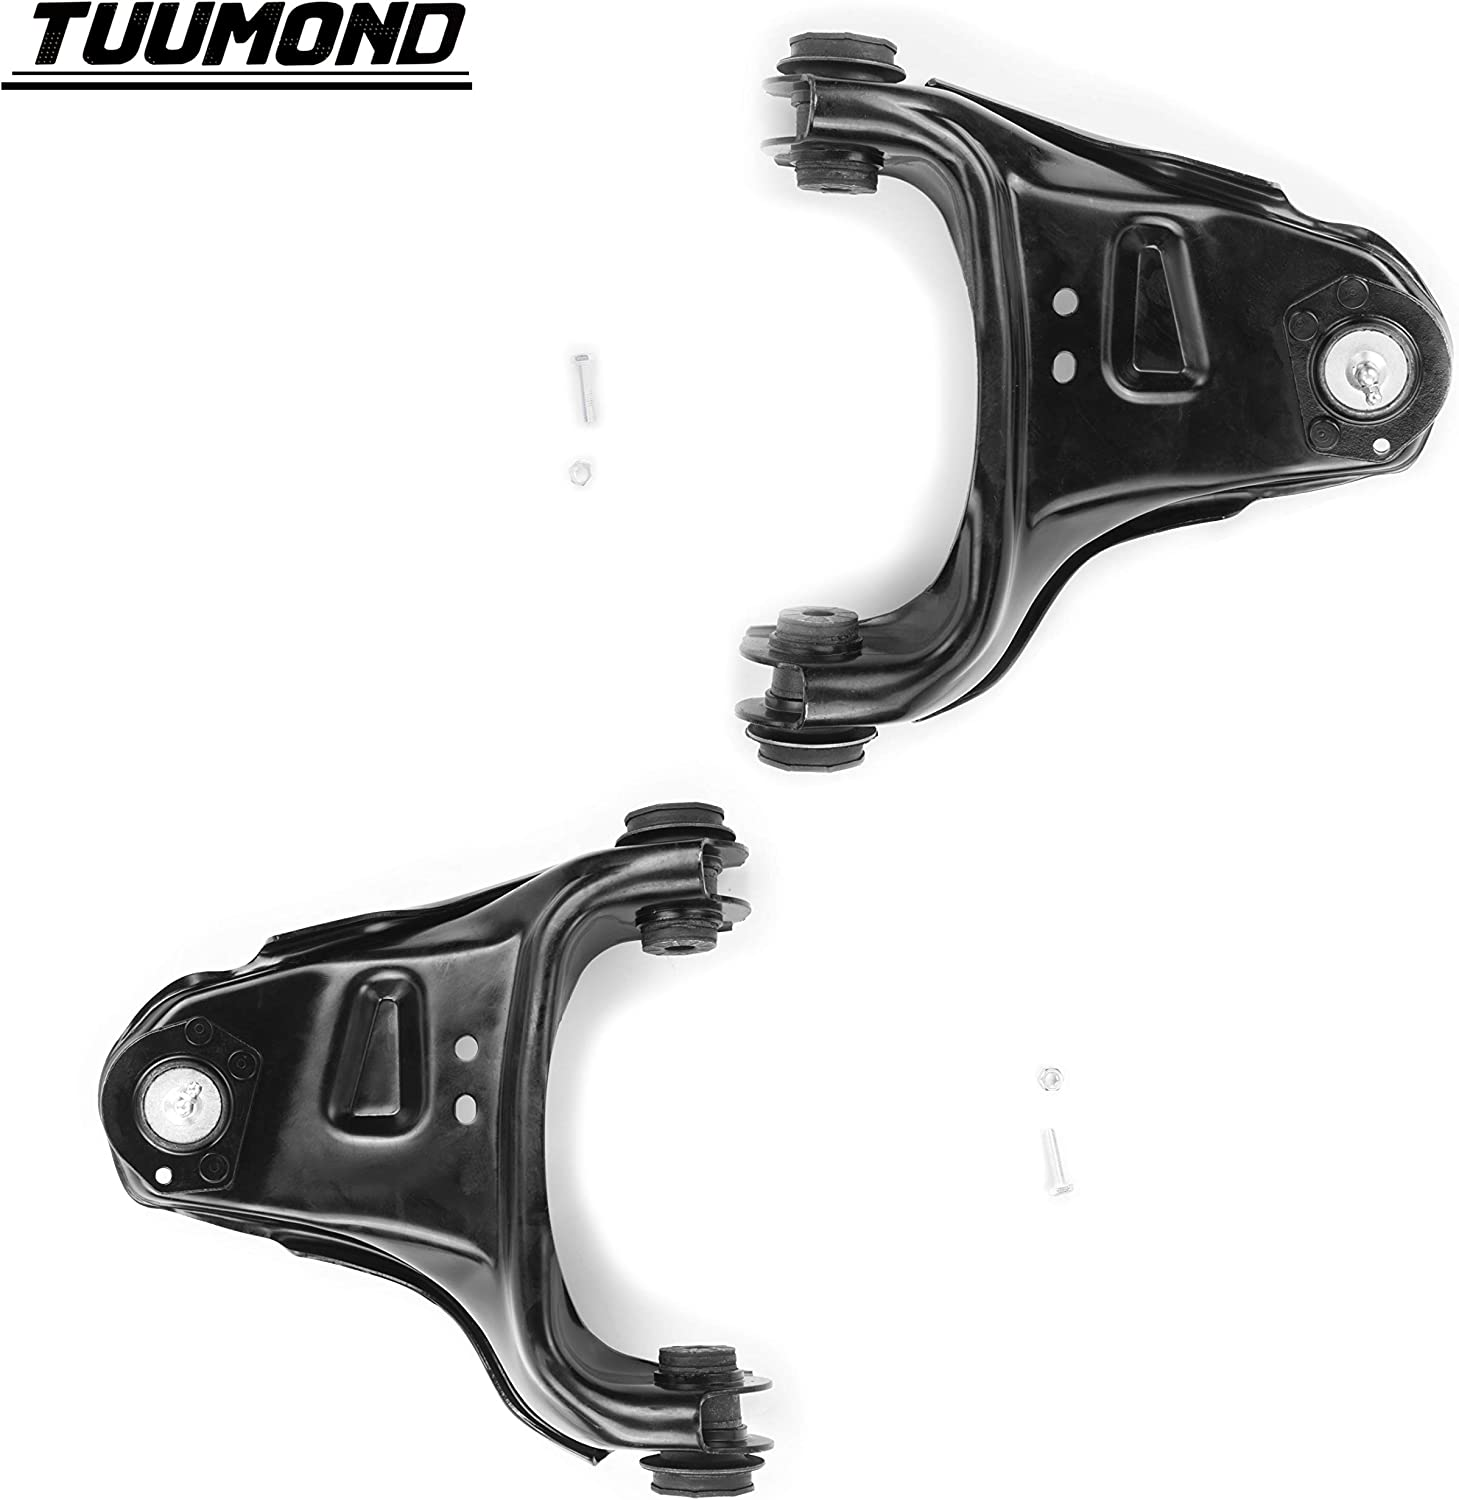 TUUMOND Front Upper Control Arm with Ball Joint for 1995 1996 1997 1998 1999 2000 2001 2002 2003 2004 2005 for Chevy Blazer; 1991-04 for GMC Sonoma; 98-00 for Isuzu Hombre K620172 K620173